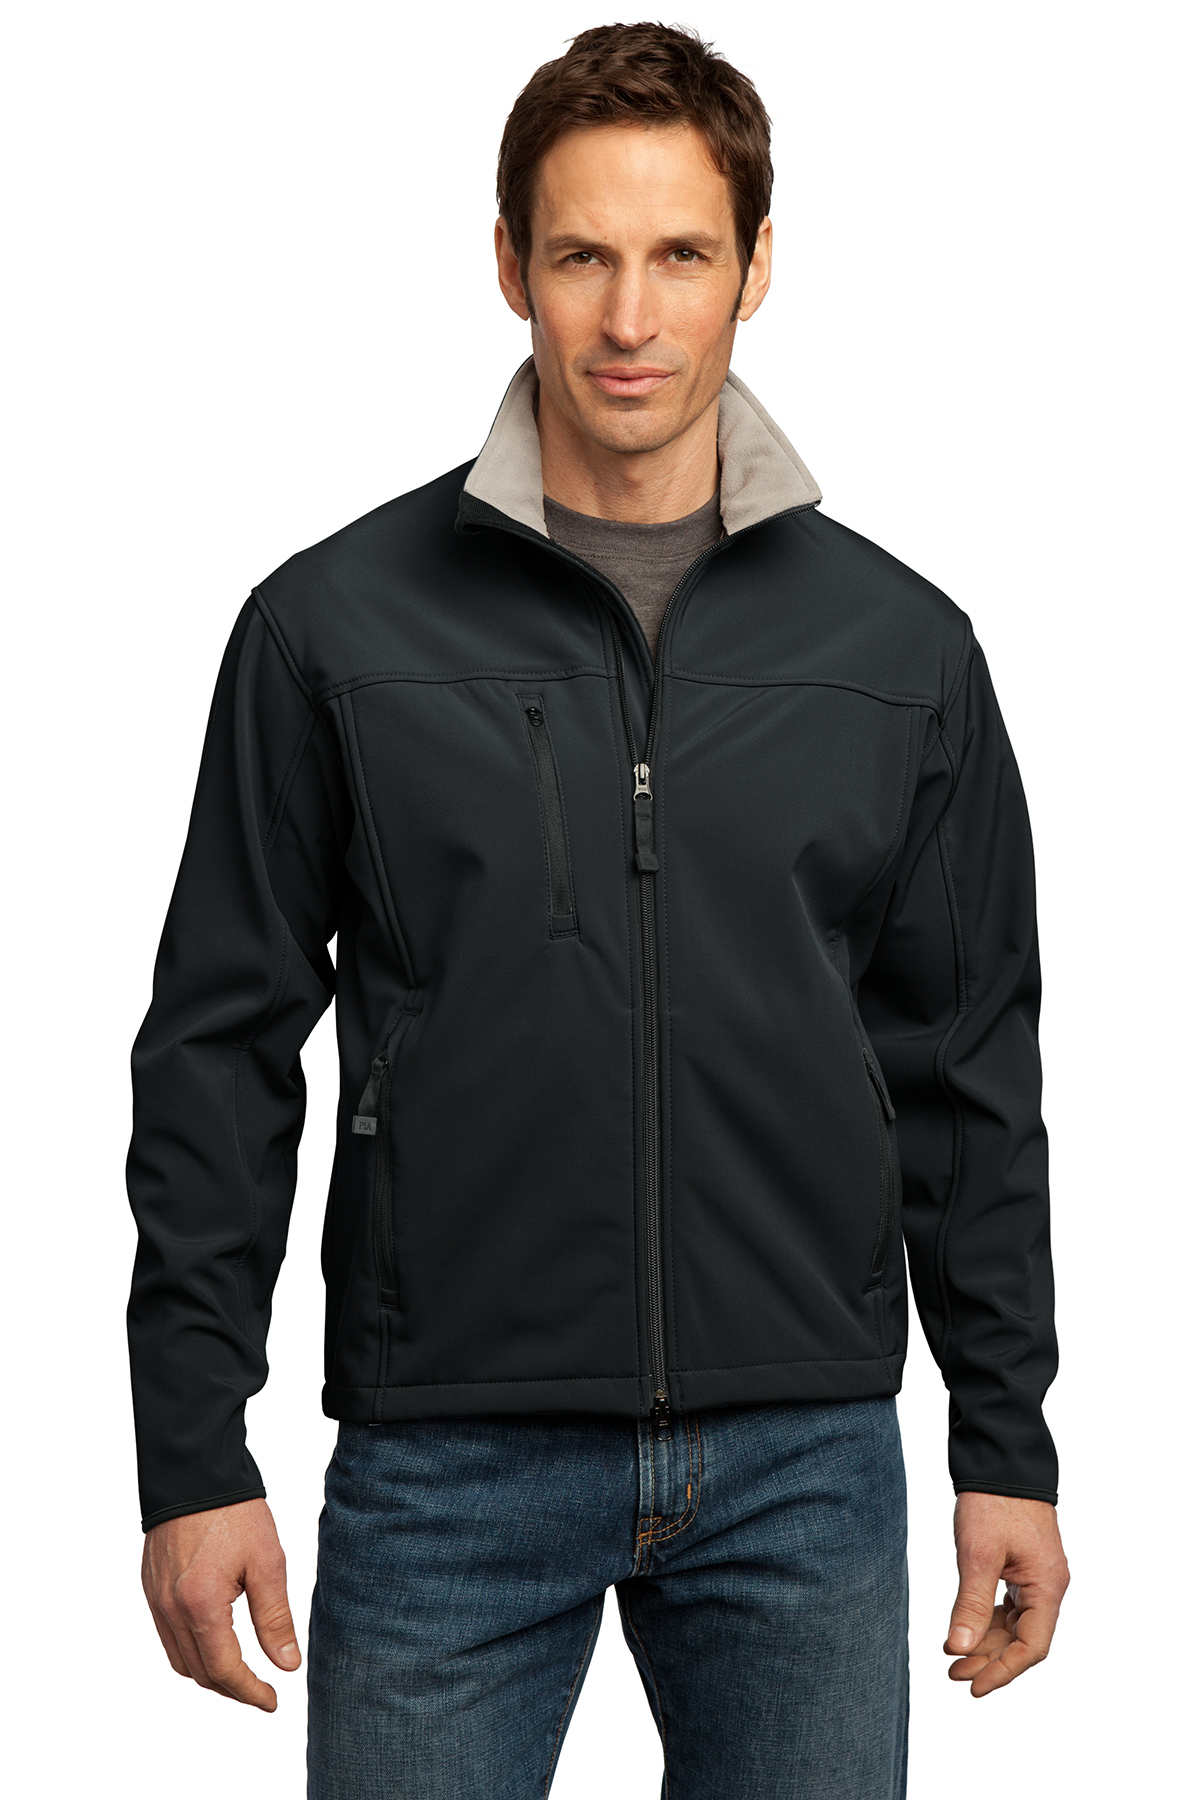 Port Authority® TLJ790 - Tall Glacier Soft Shell Jacket